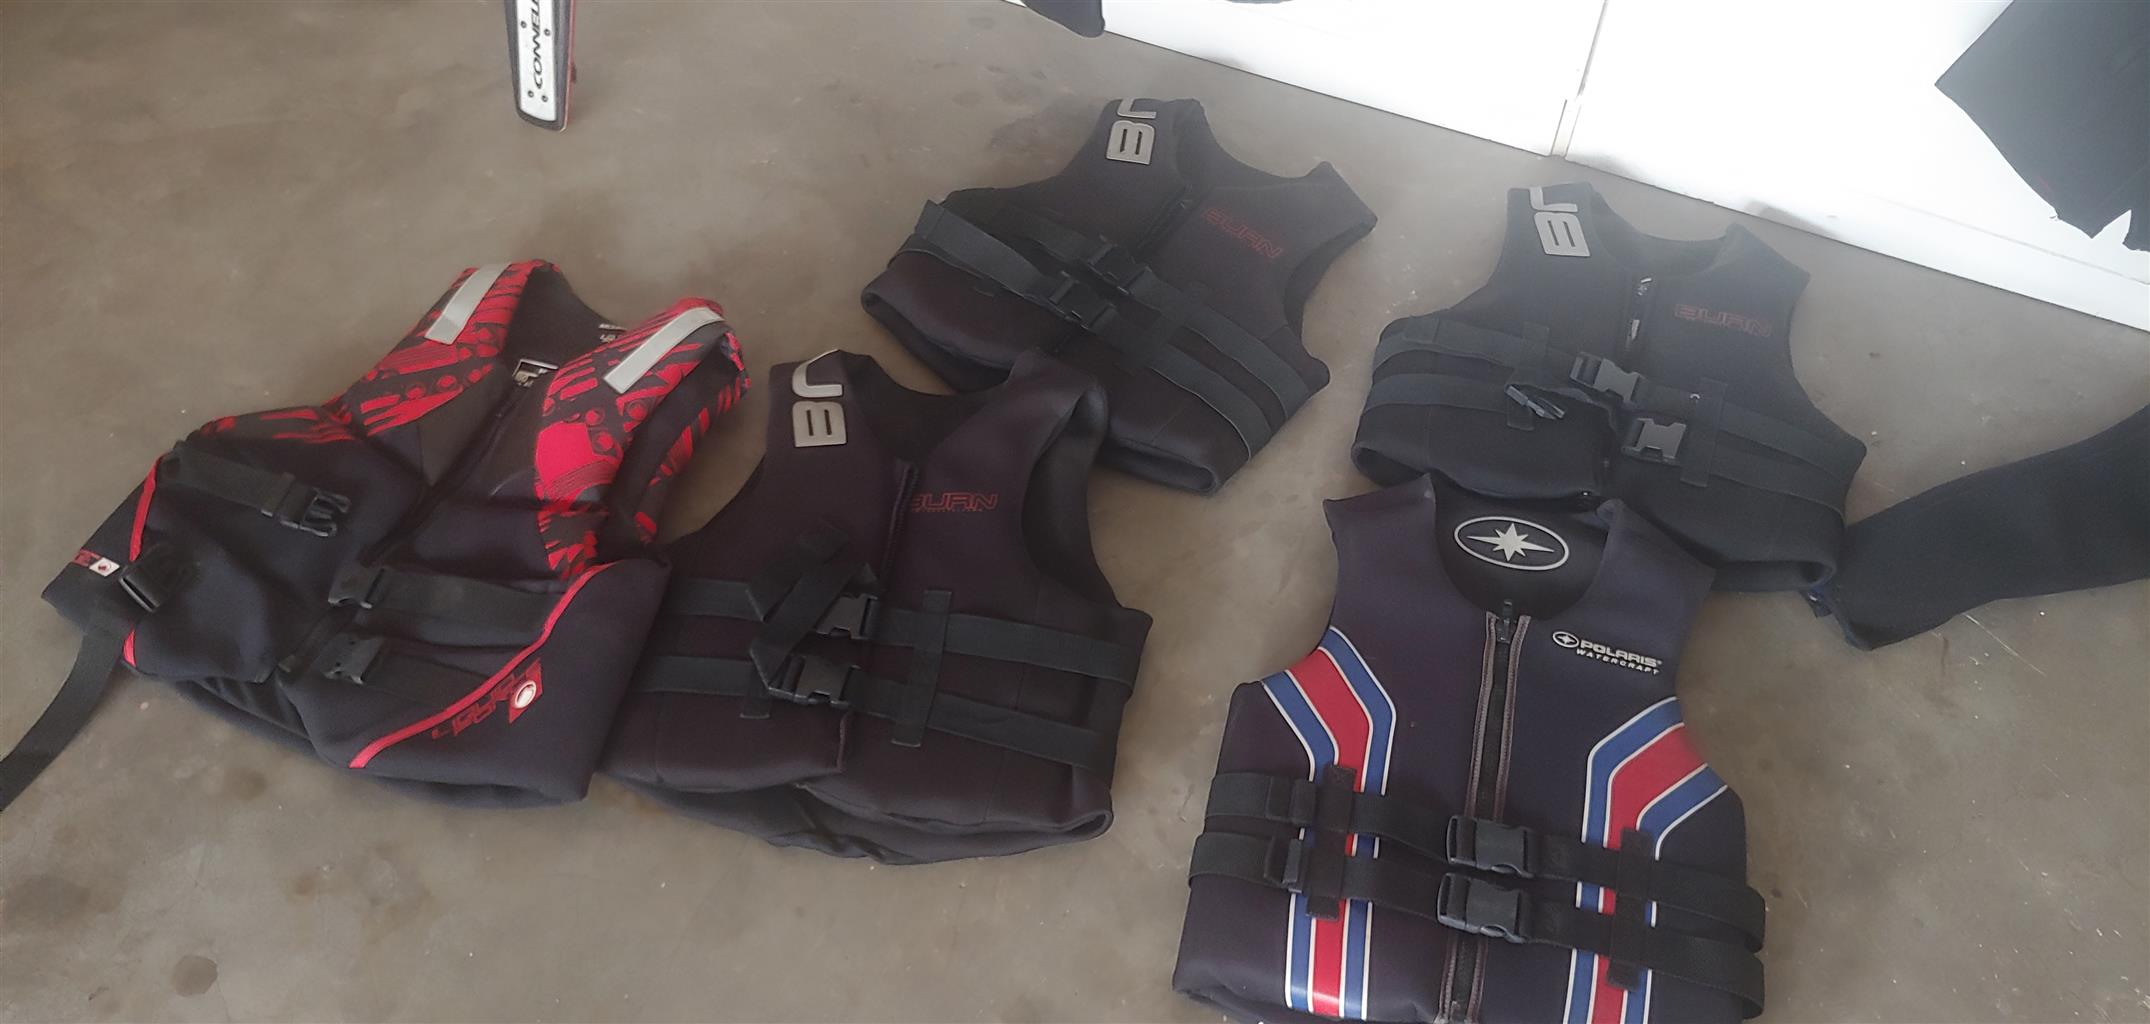 Wet suits, life jackets and ski